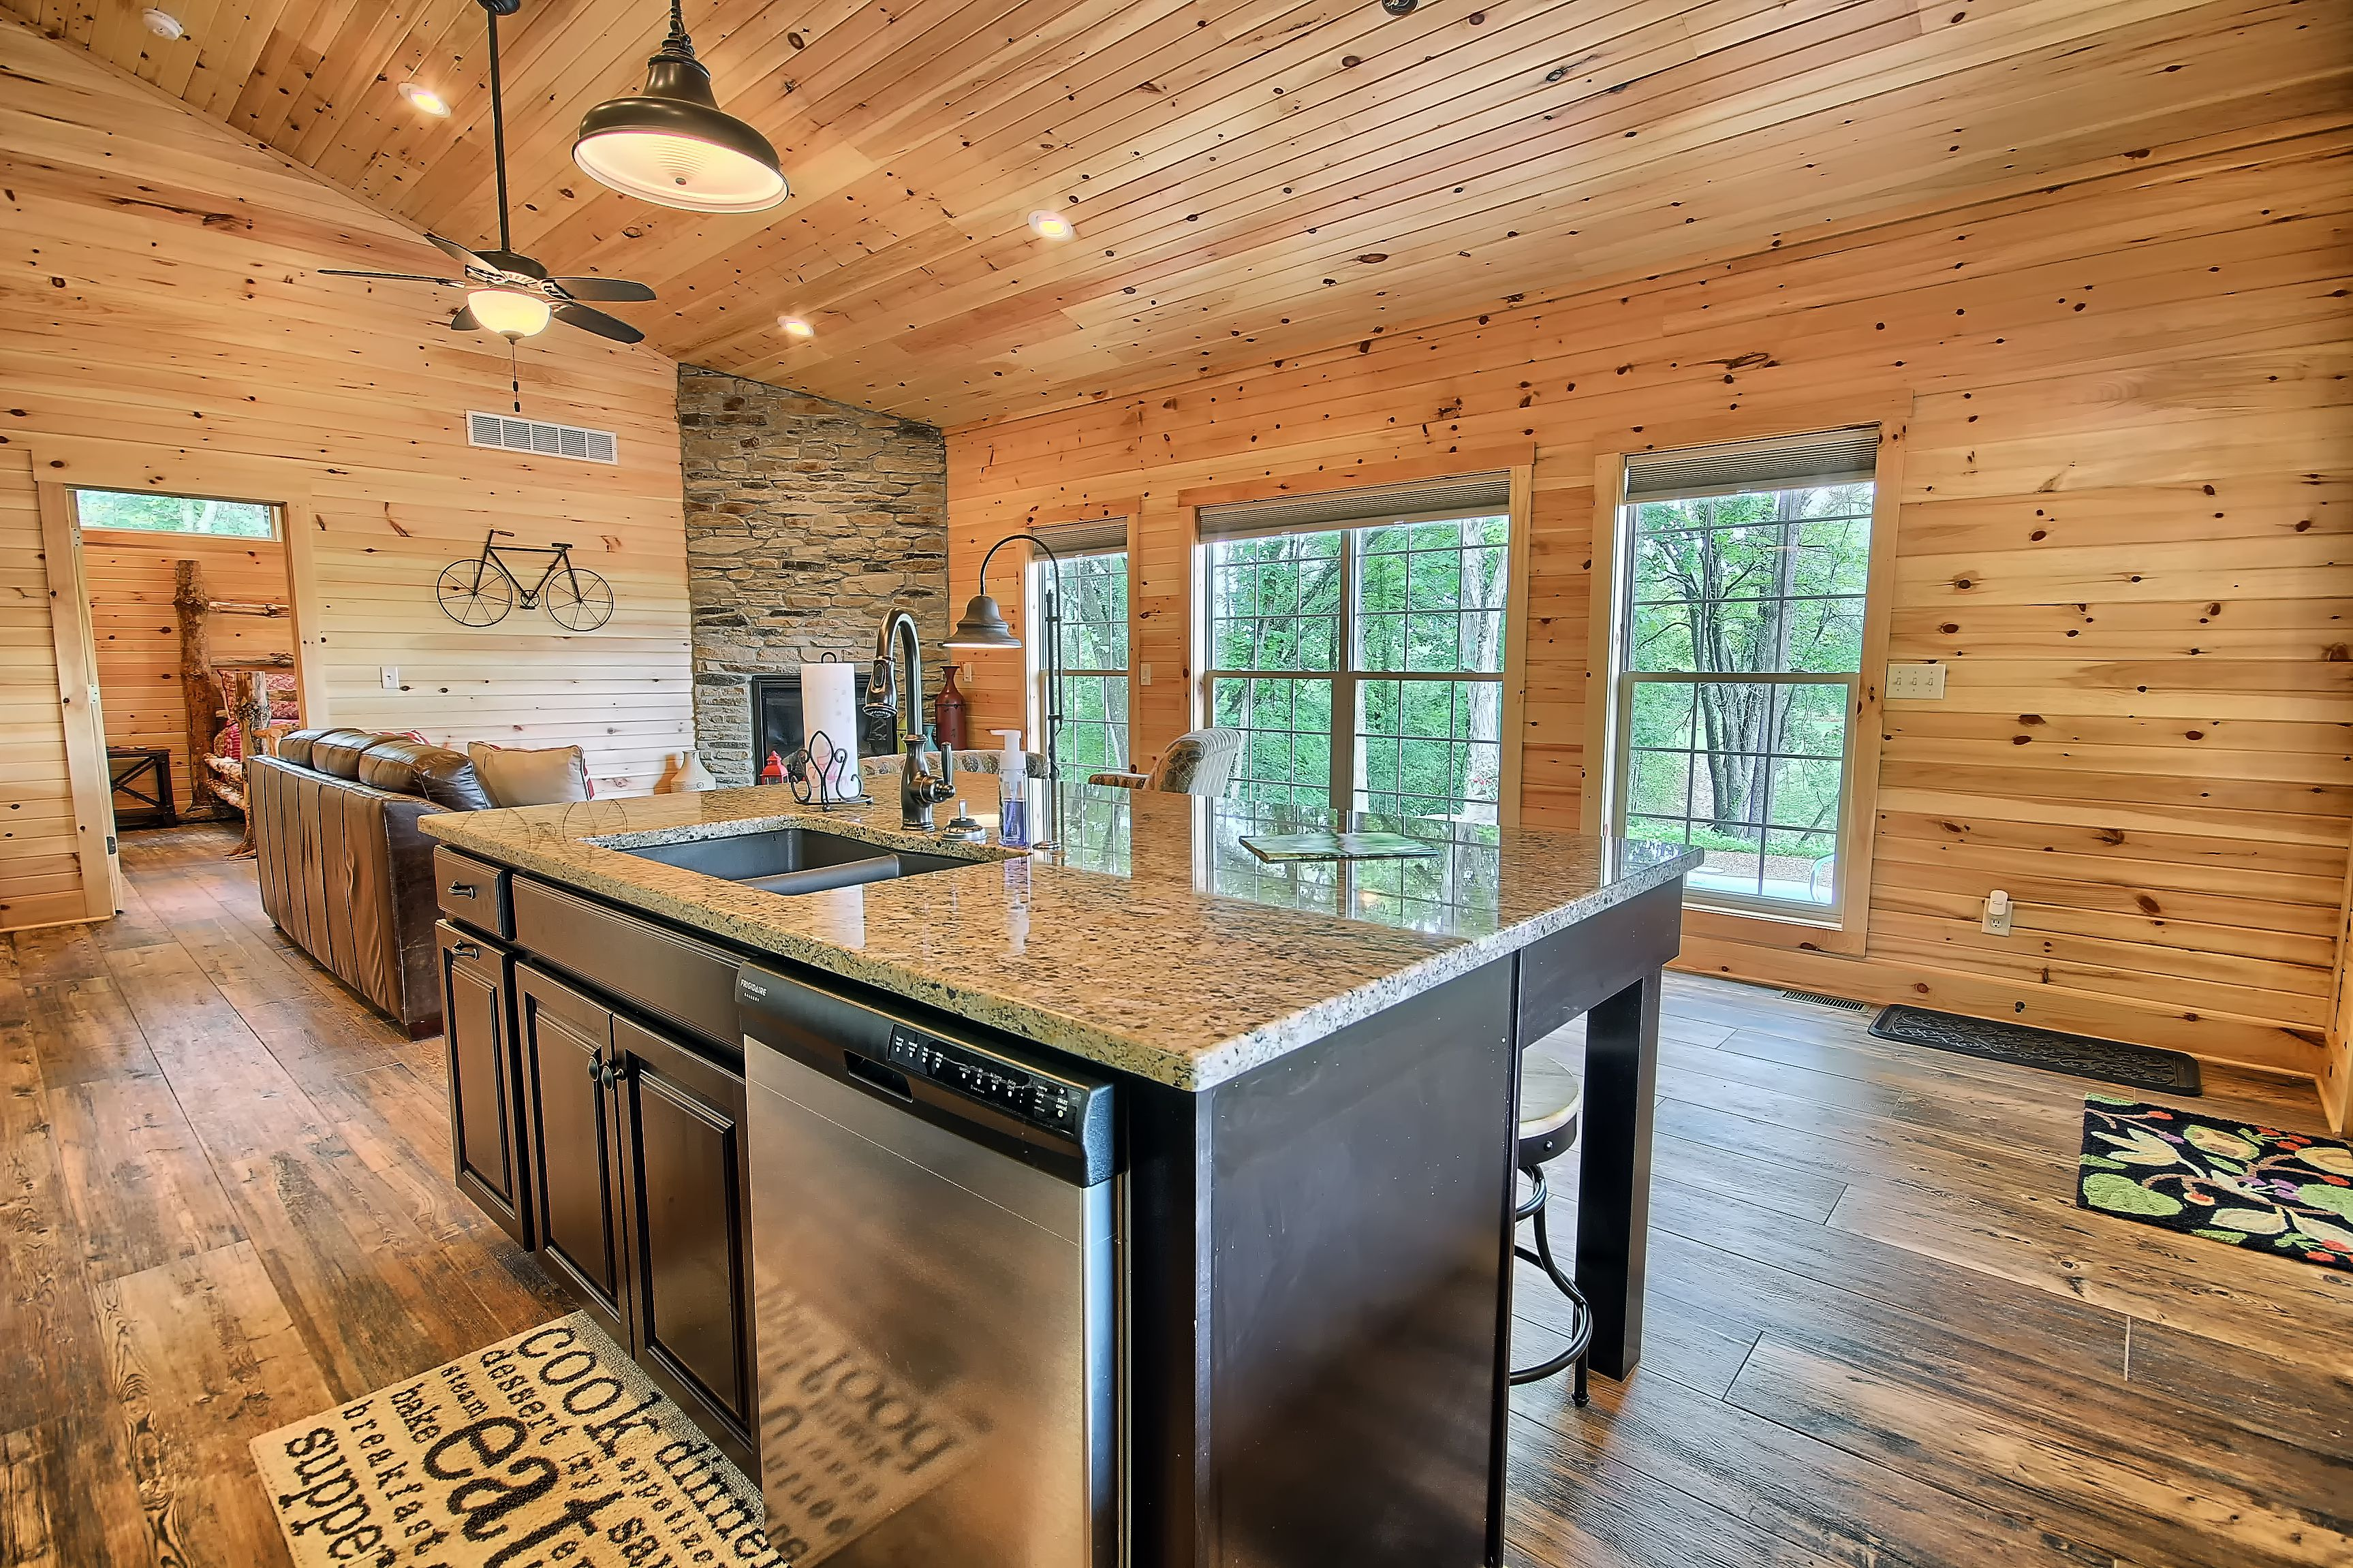 The Bookers Luxury Cabin Hocking Hills Luxury Lodges